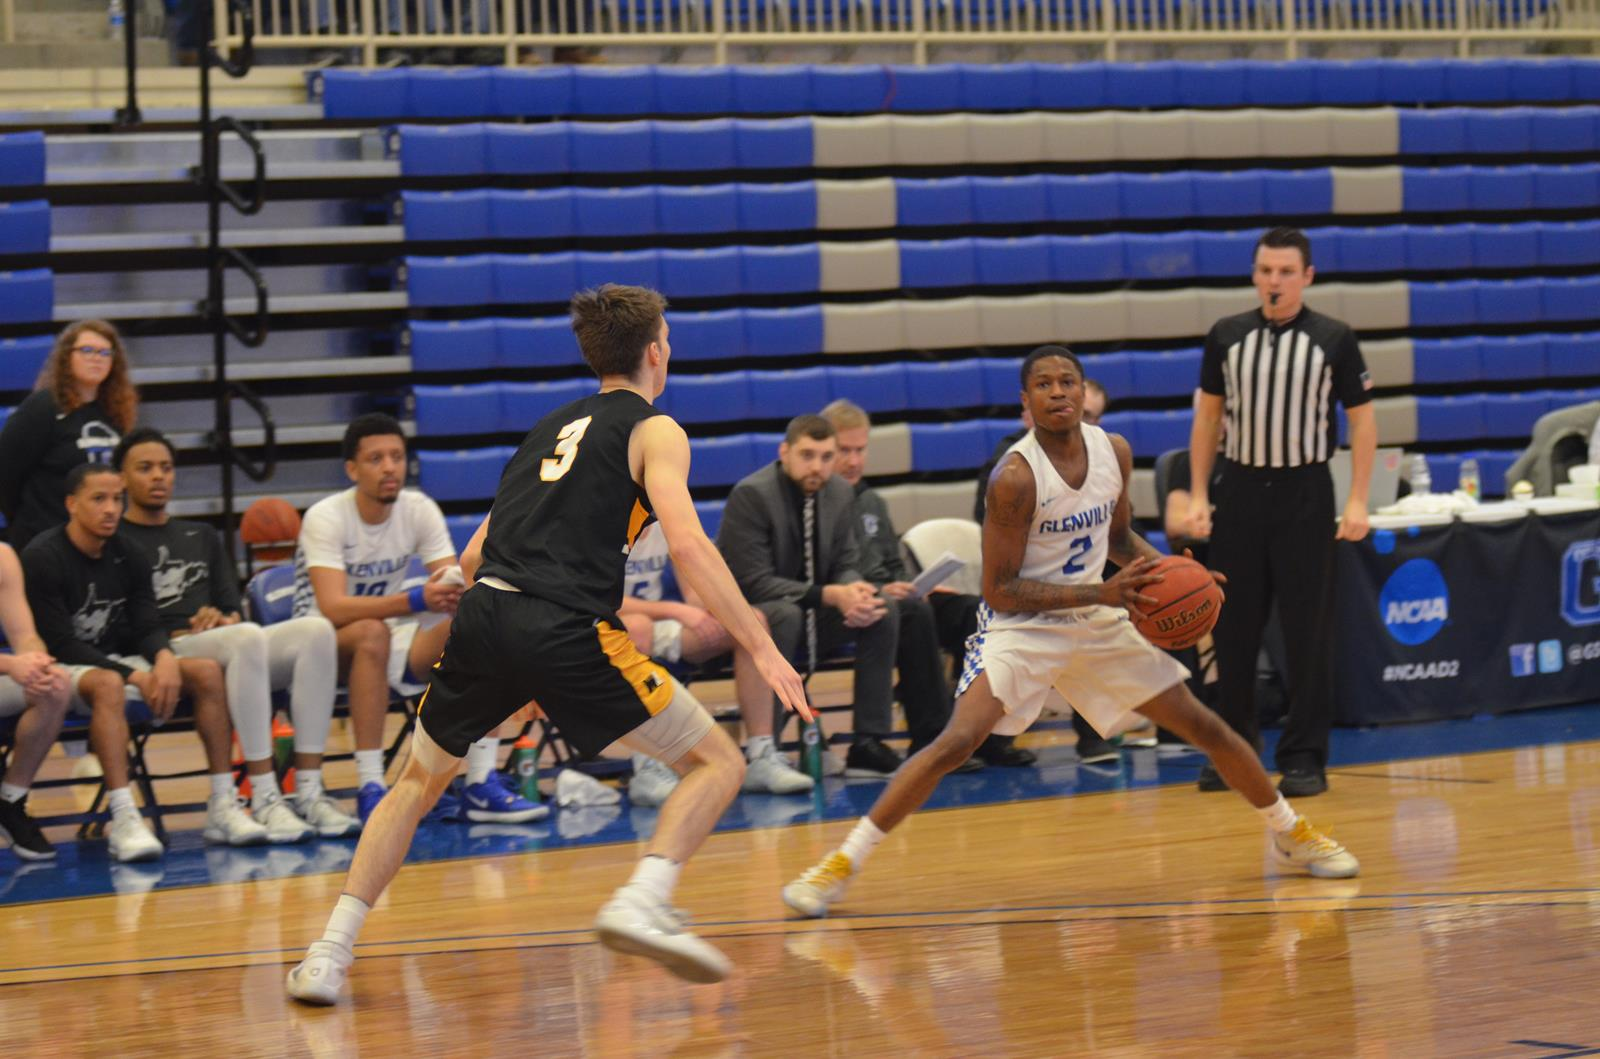 Pioneers Travel to Face Cardinals - Glenville State ...